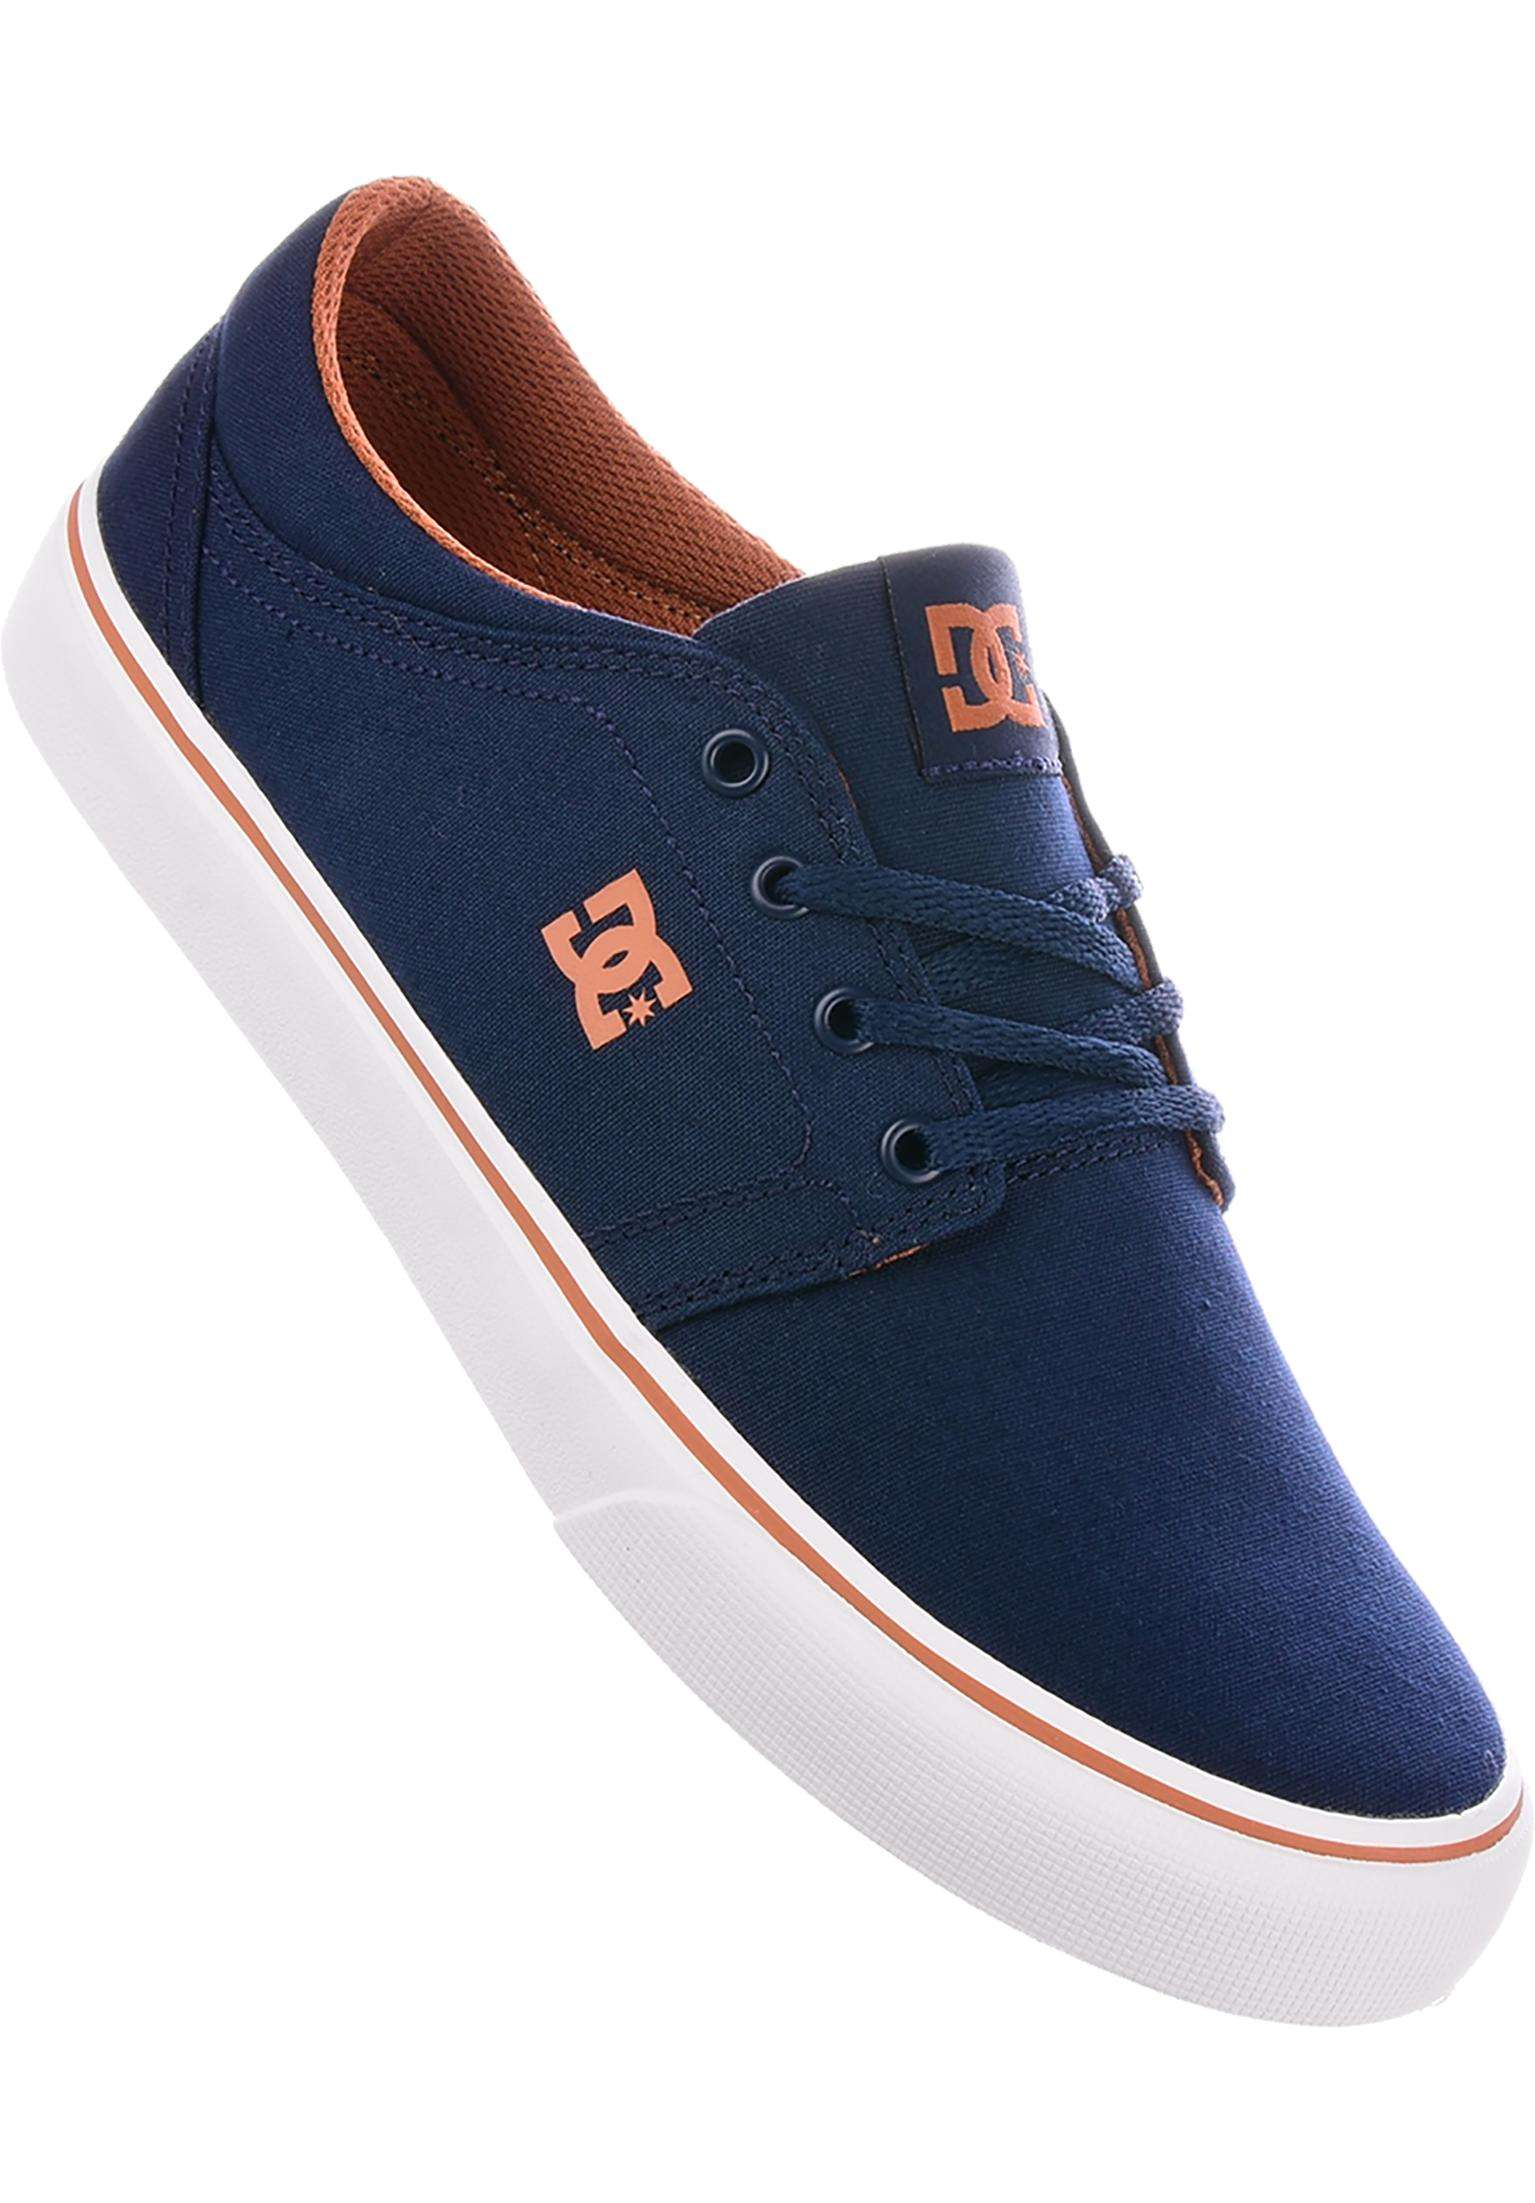 Trase TX DC Shoes All Shoes in navy-camel for Men  62e1e1ac68